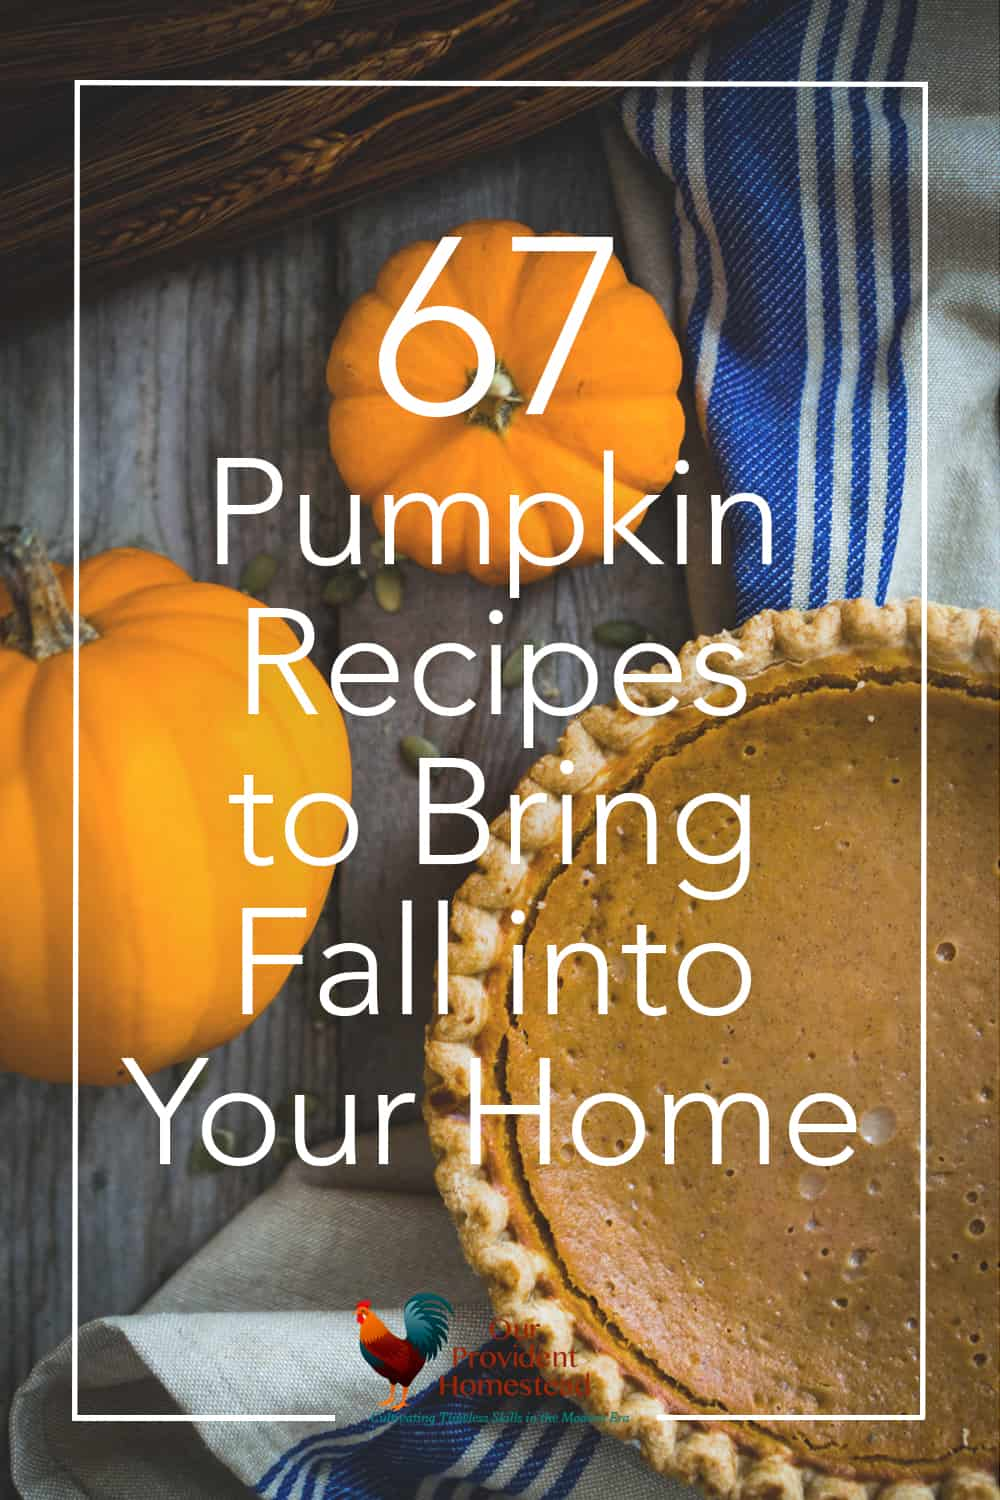 Do you love pumpkin recipes? Click here to get 67 pumpkin recipes to bring fall into your home, from pumpkin pie to body scrub. #pumpkin #fall #autumn #fallrecipes #pumpkinrecipes #pumpkinspice